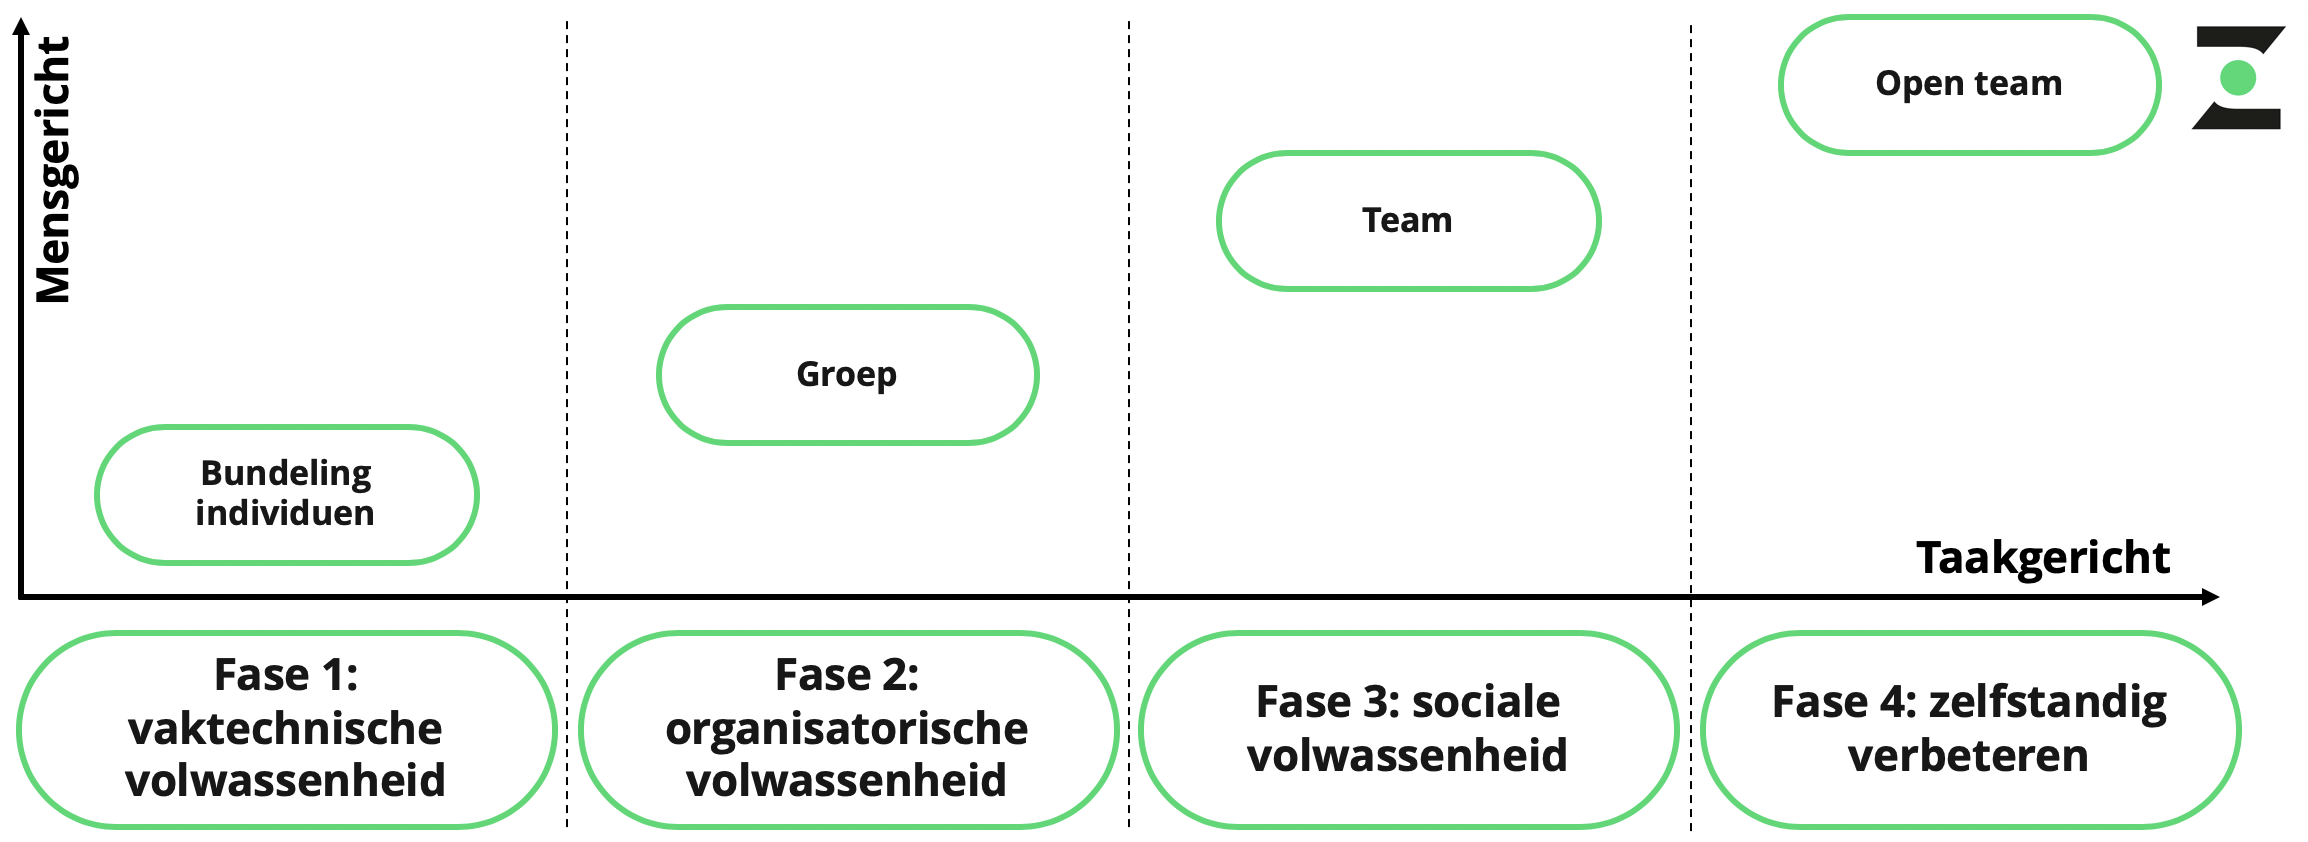 Fases zelfsturende teams fases zelforganiserende teams model